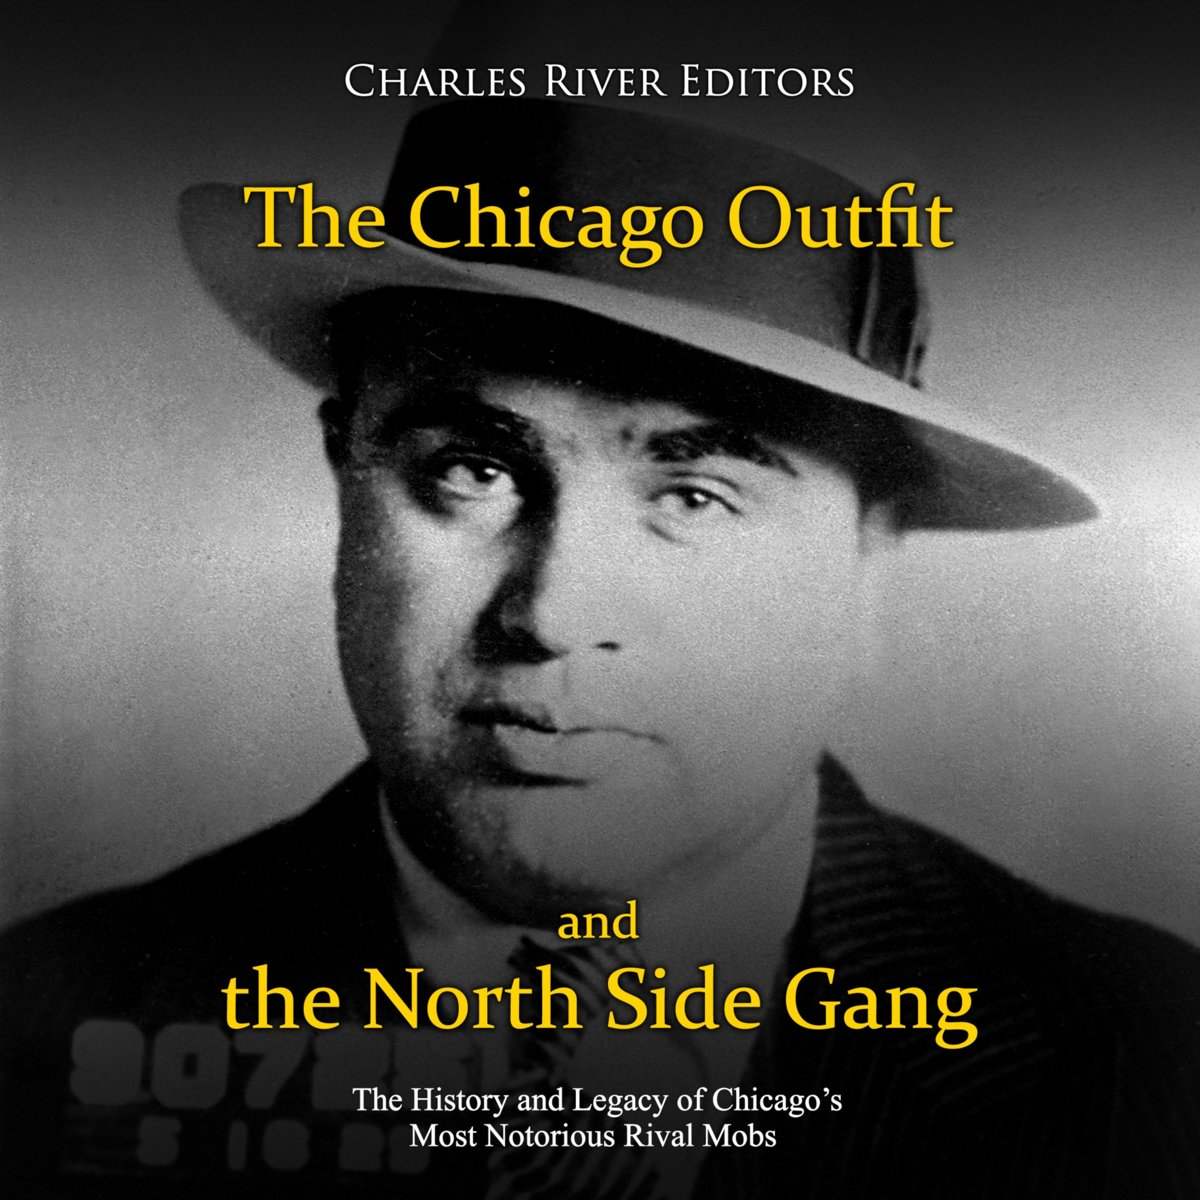 Chicago Outfit and the North Side Gang, The